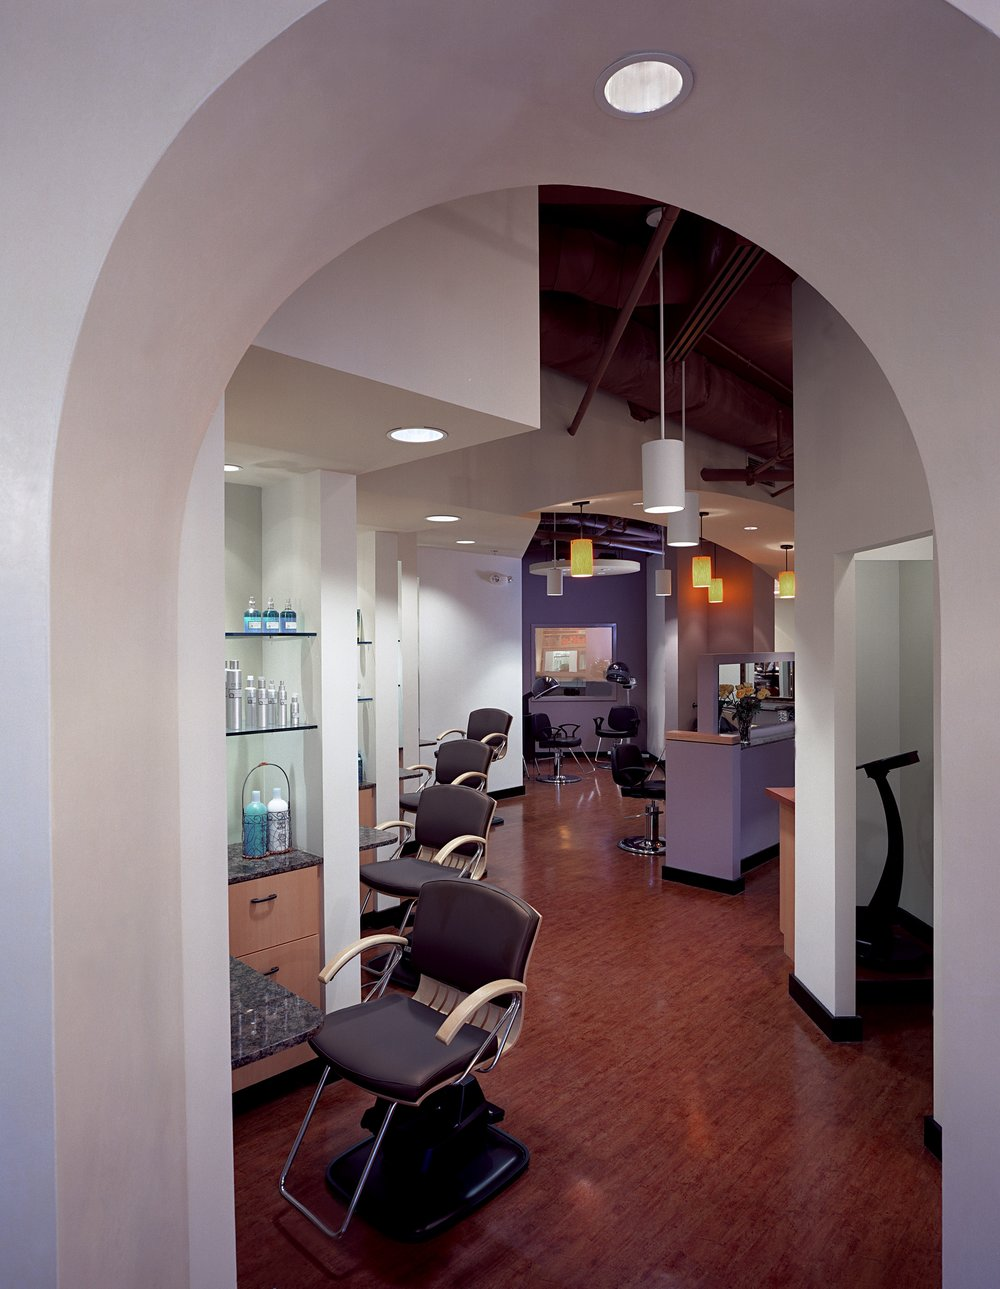 salon1fincopy.jpg